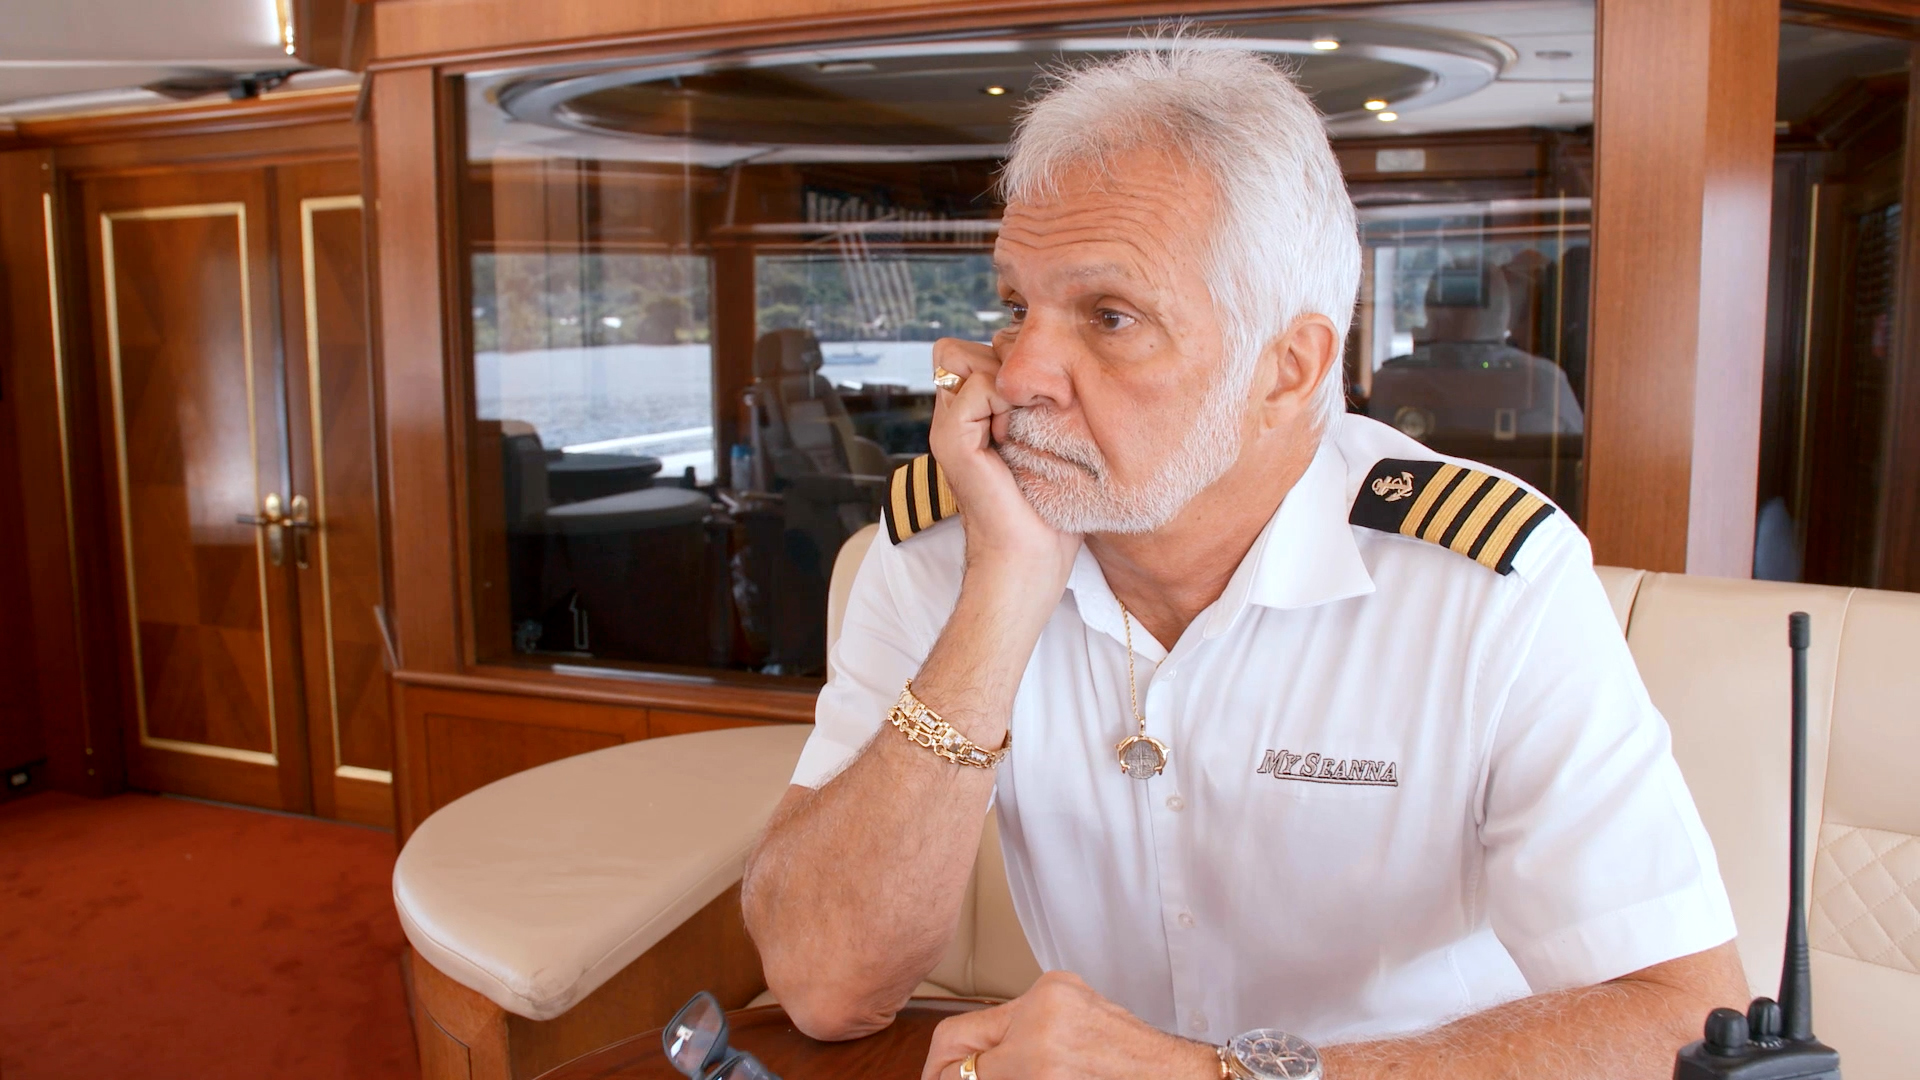 Captain Lee Calls in Laura Betancourt for a Chat